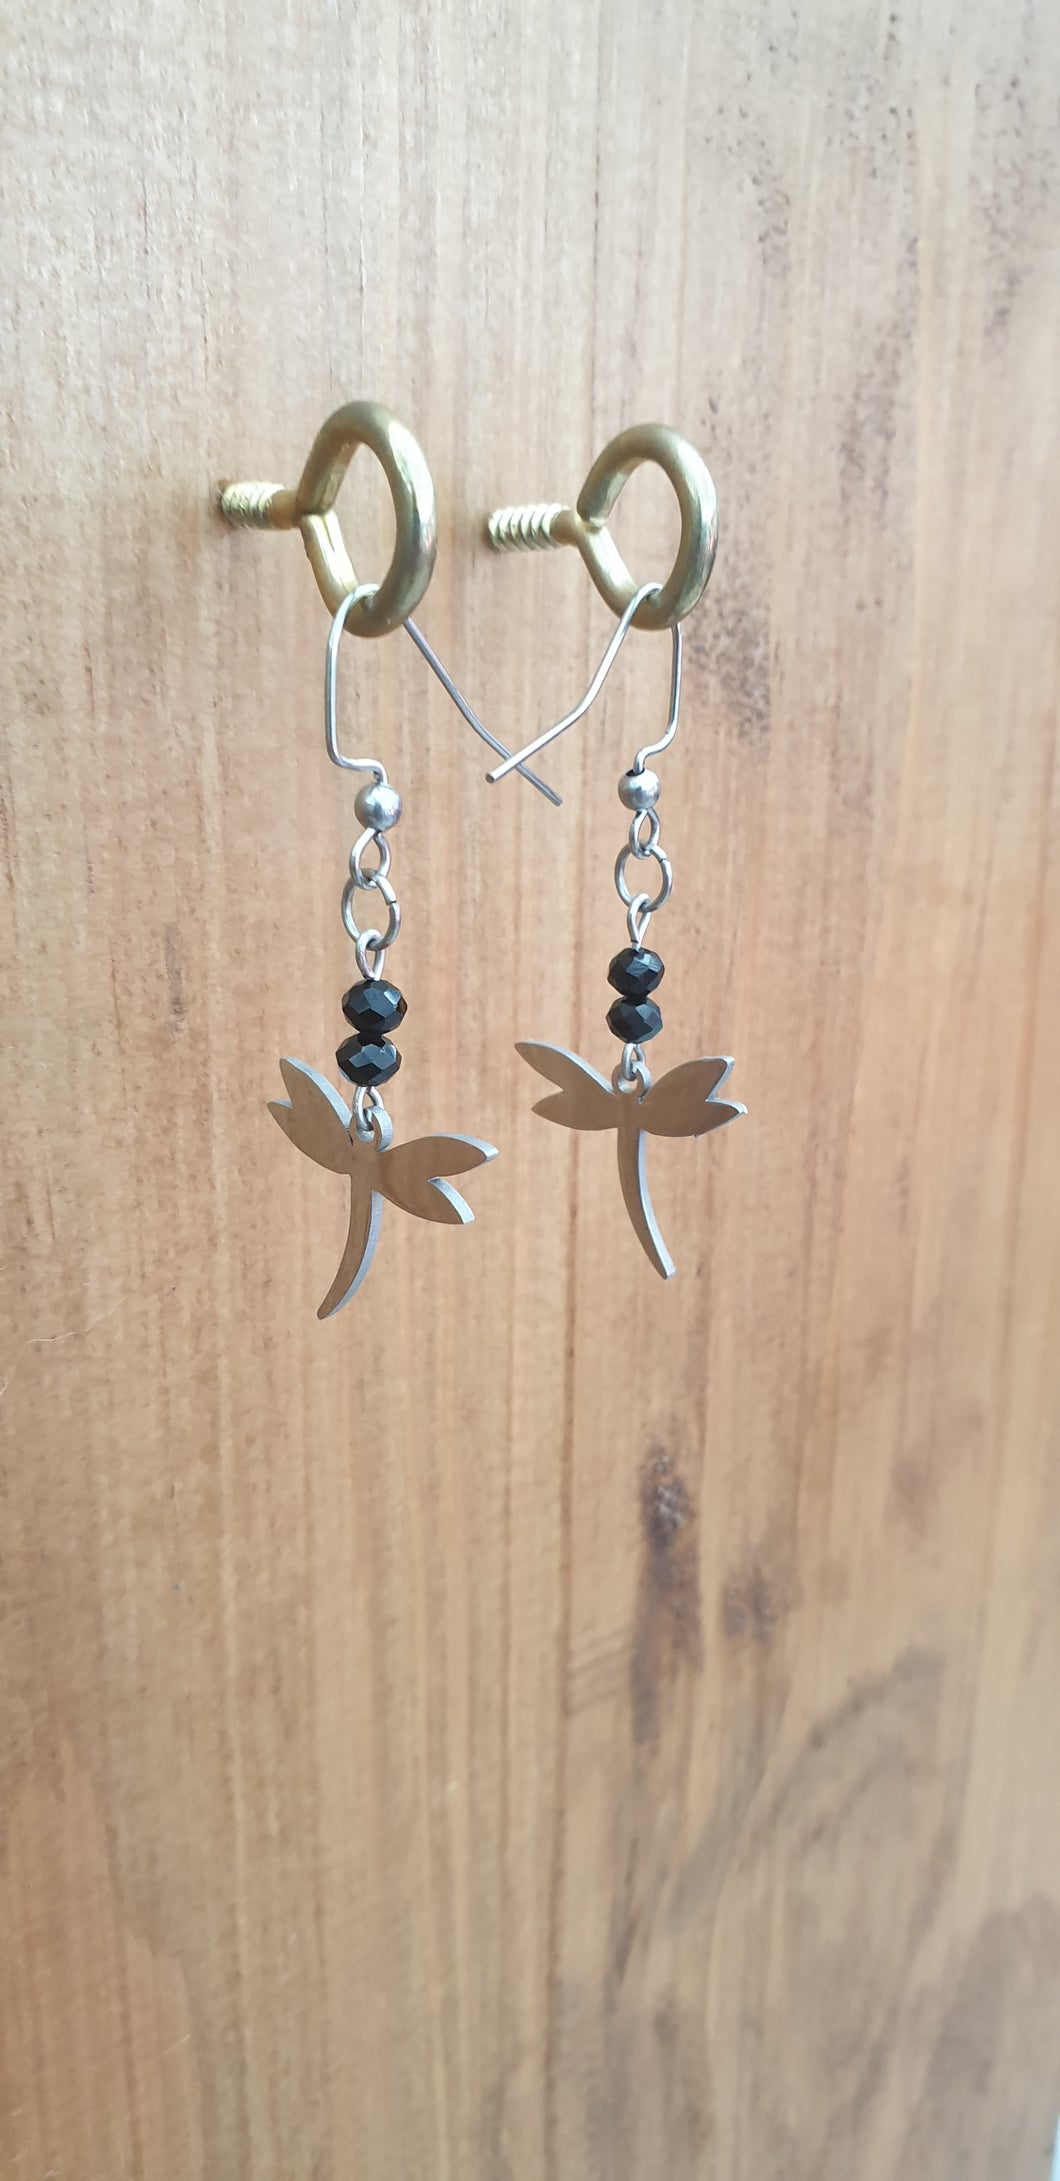 Dragonfly Stainless Steel Earrings